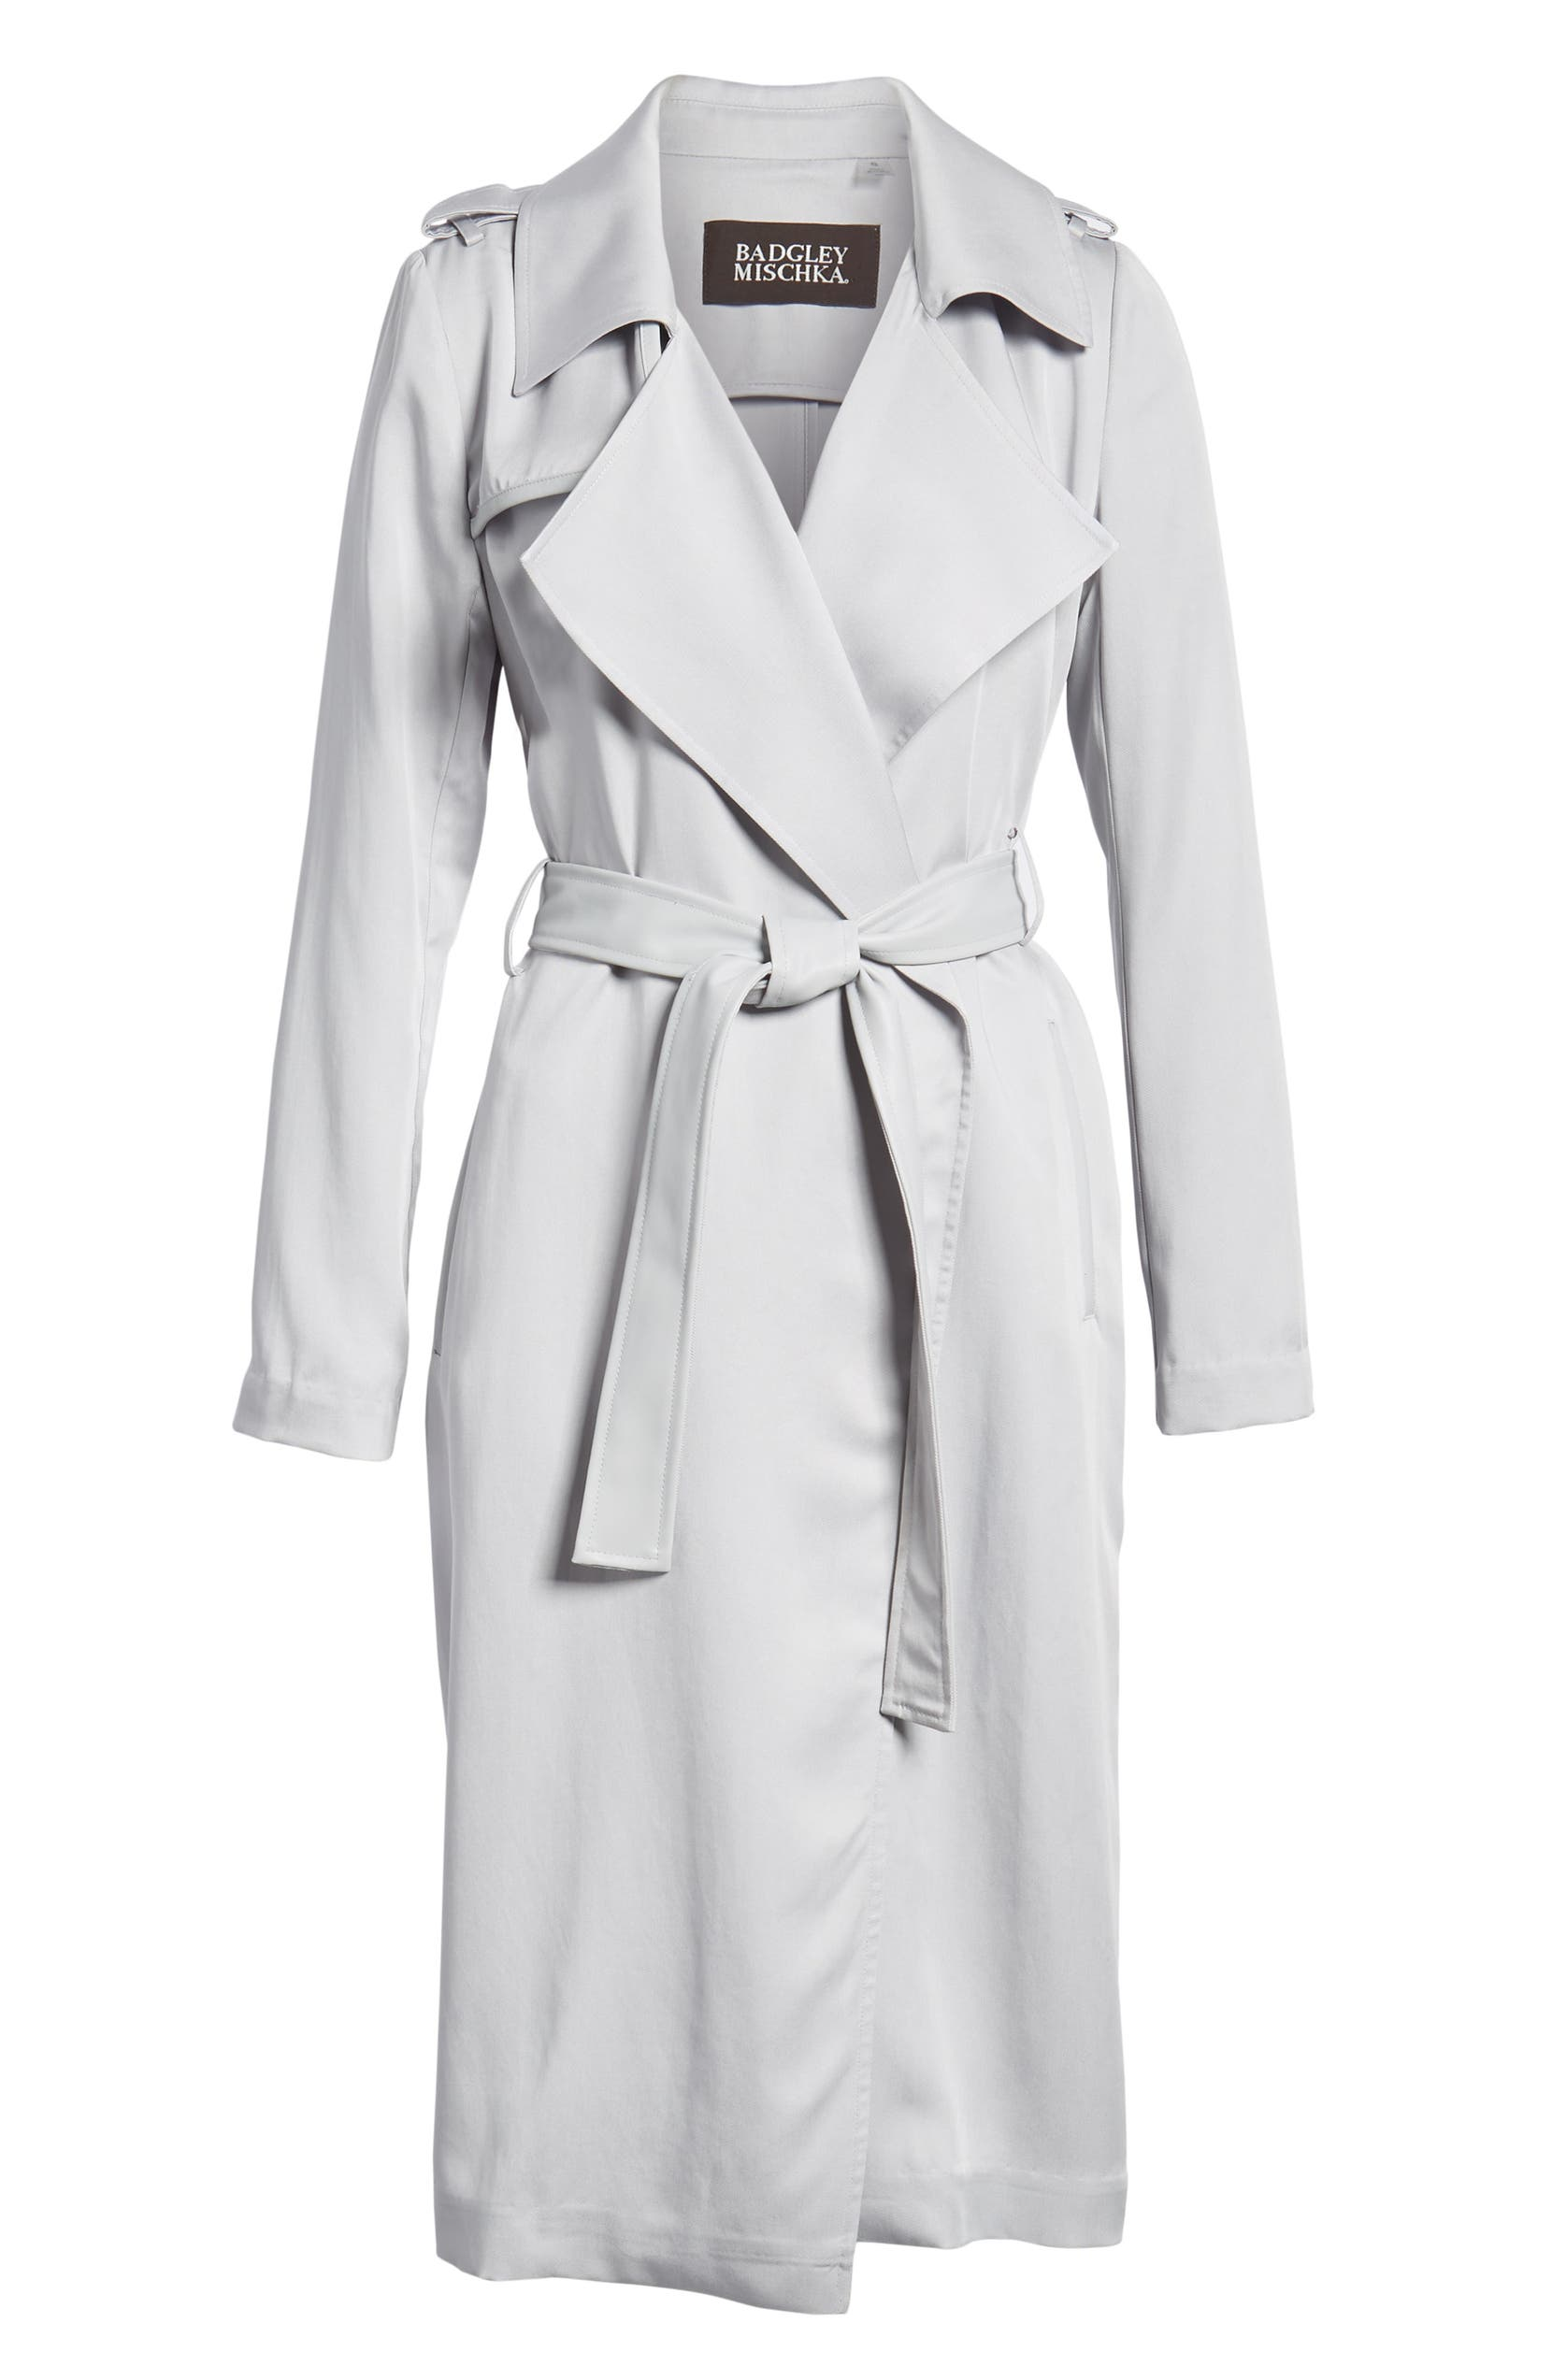 8f85062096e Badgley Mischka Faux Leather Trim Long Trench Coat | Nordstrom